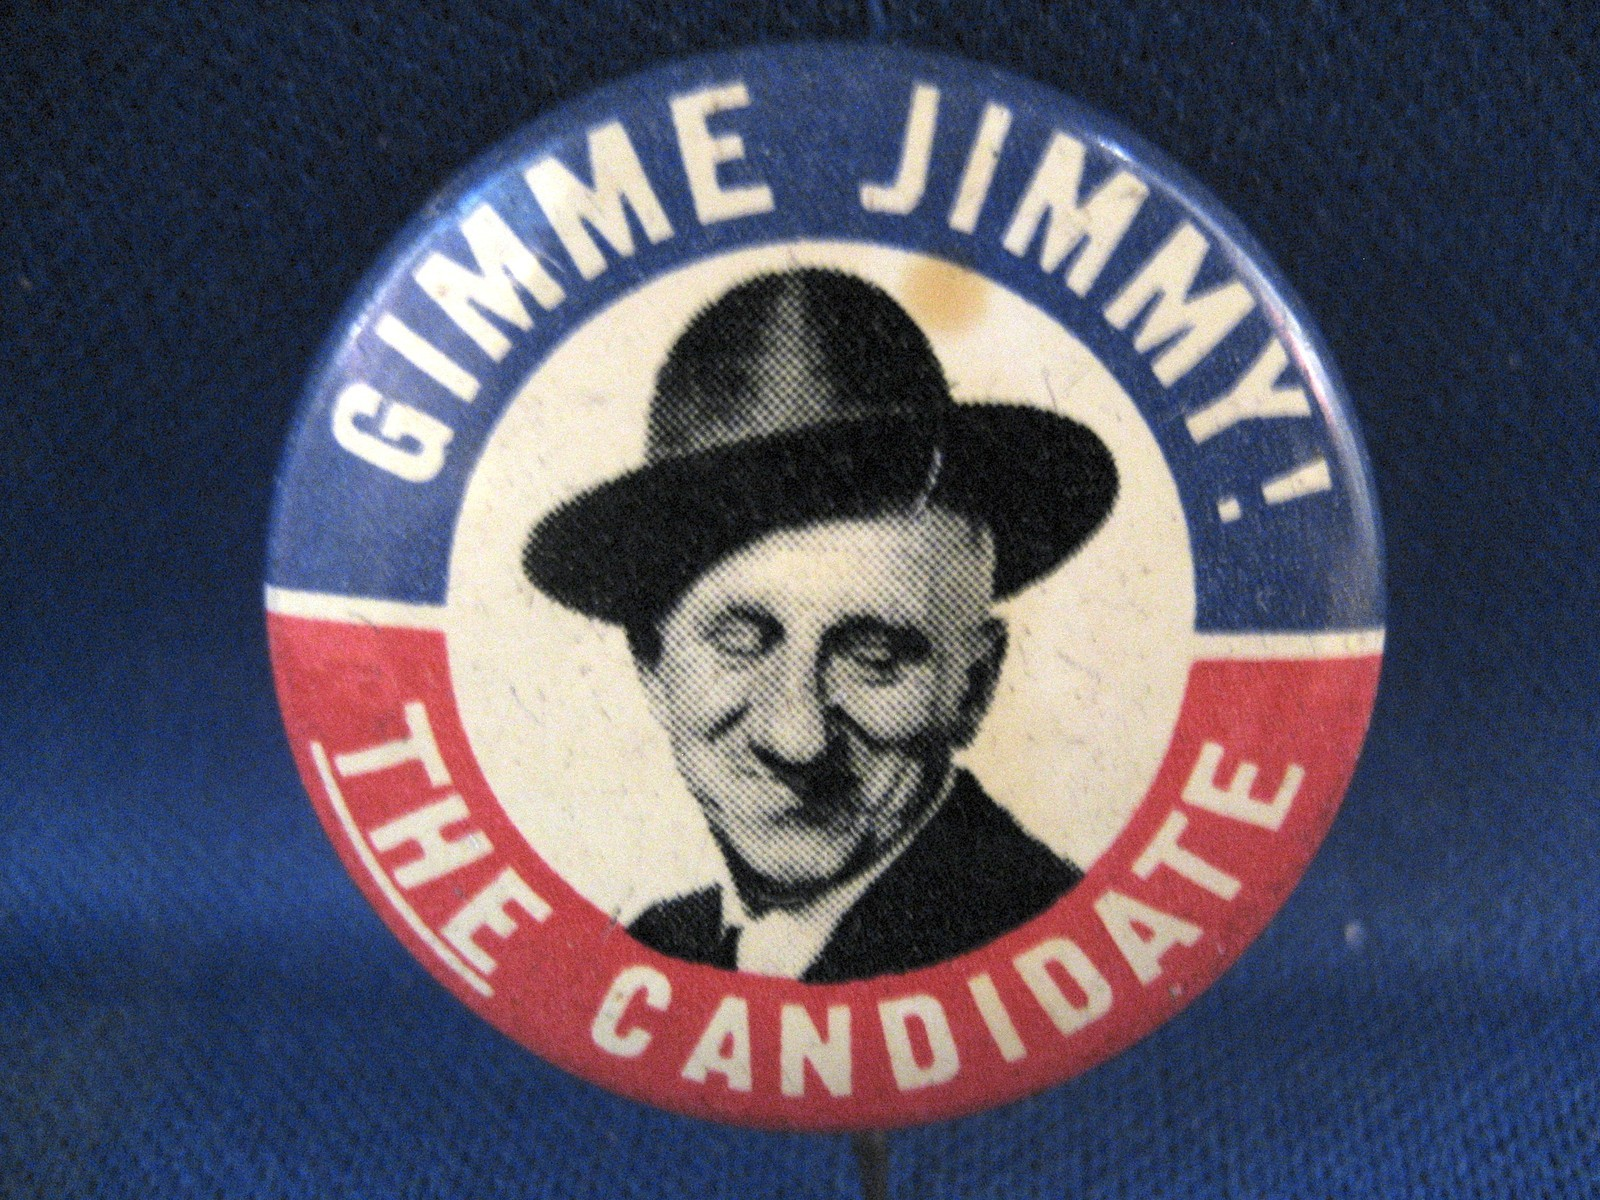 gimme jimmy button